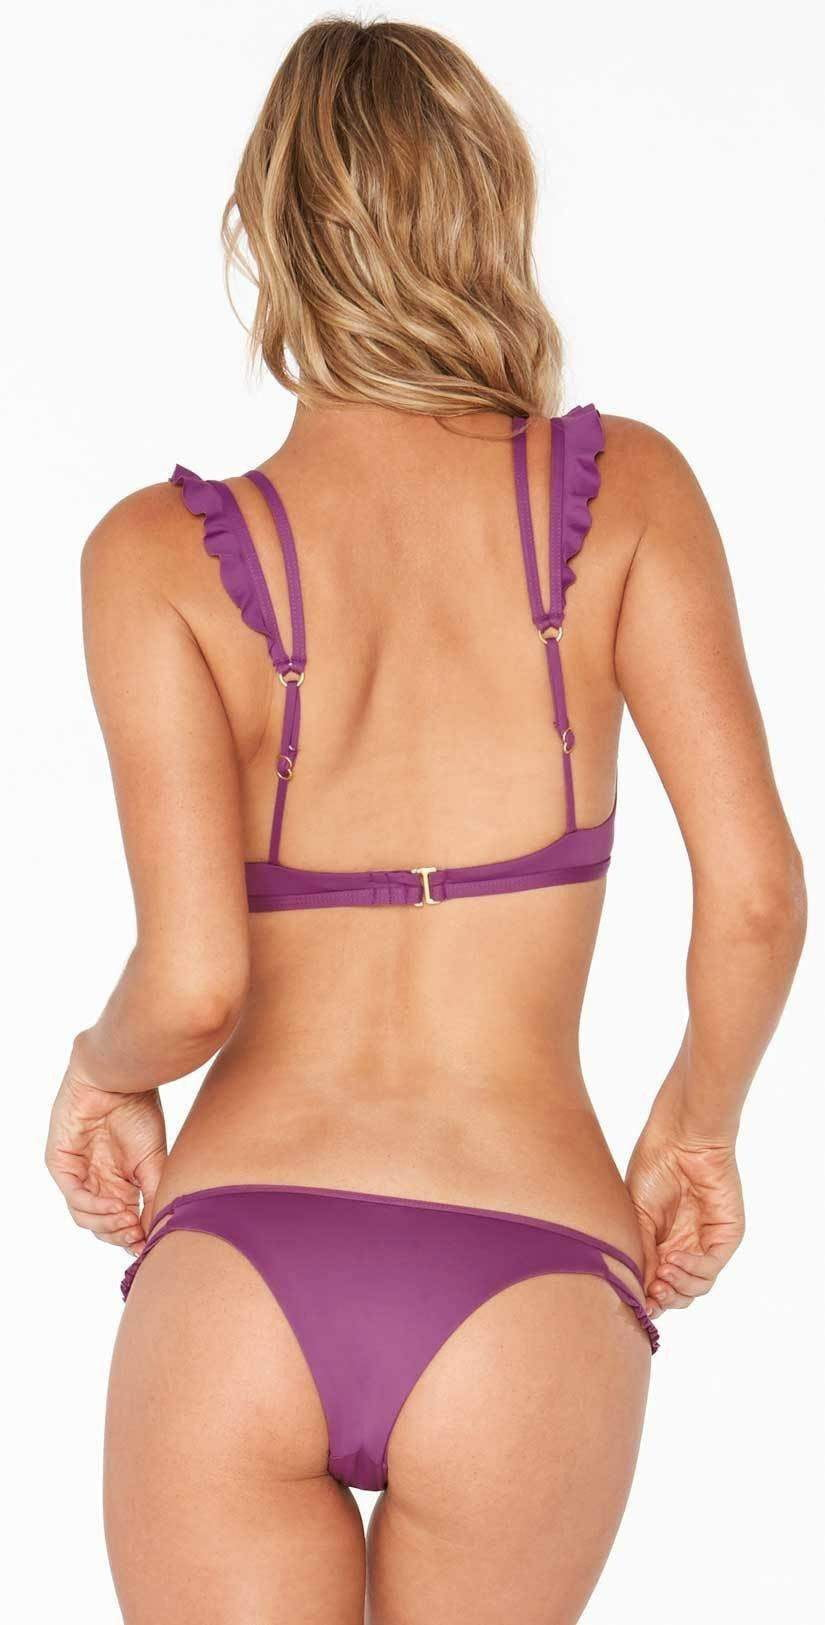 L Space Zephyr Bottom In Orchid LSZPB18-ORC back studio